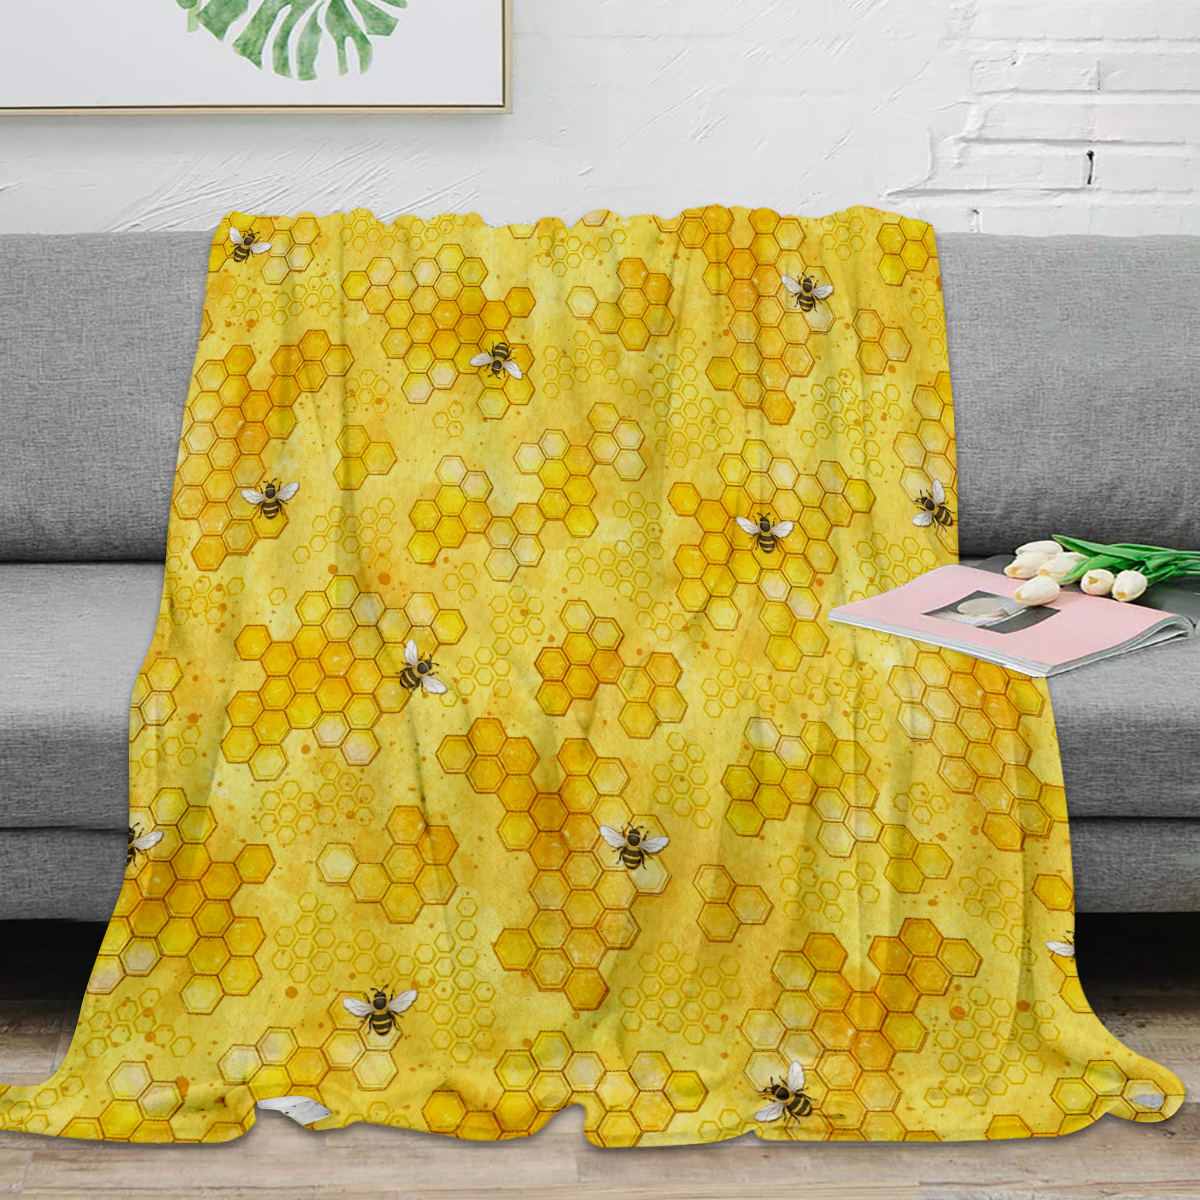 Meant to Bee Honey Bees Pattern Throw Blanket Warm Microfiber Blanket Flannel Blanket Bedroom Decor Blankets For Beds image